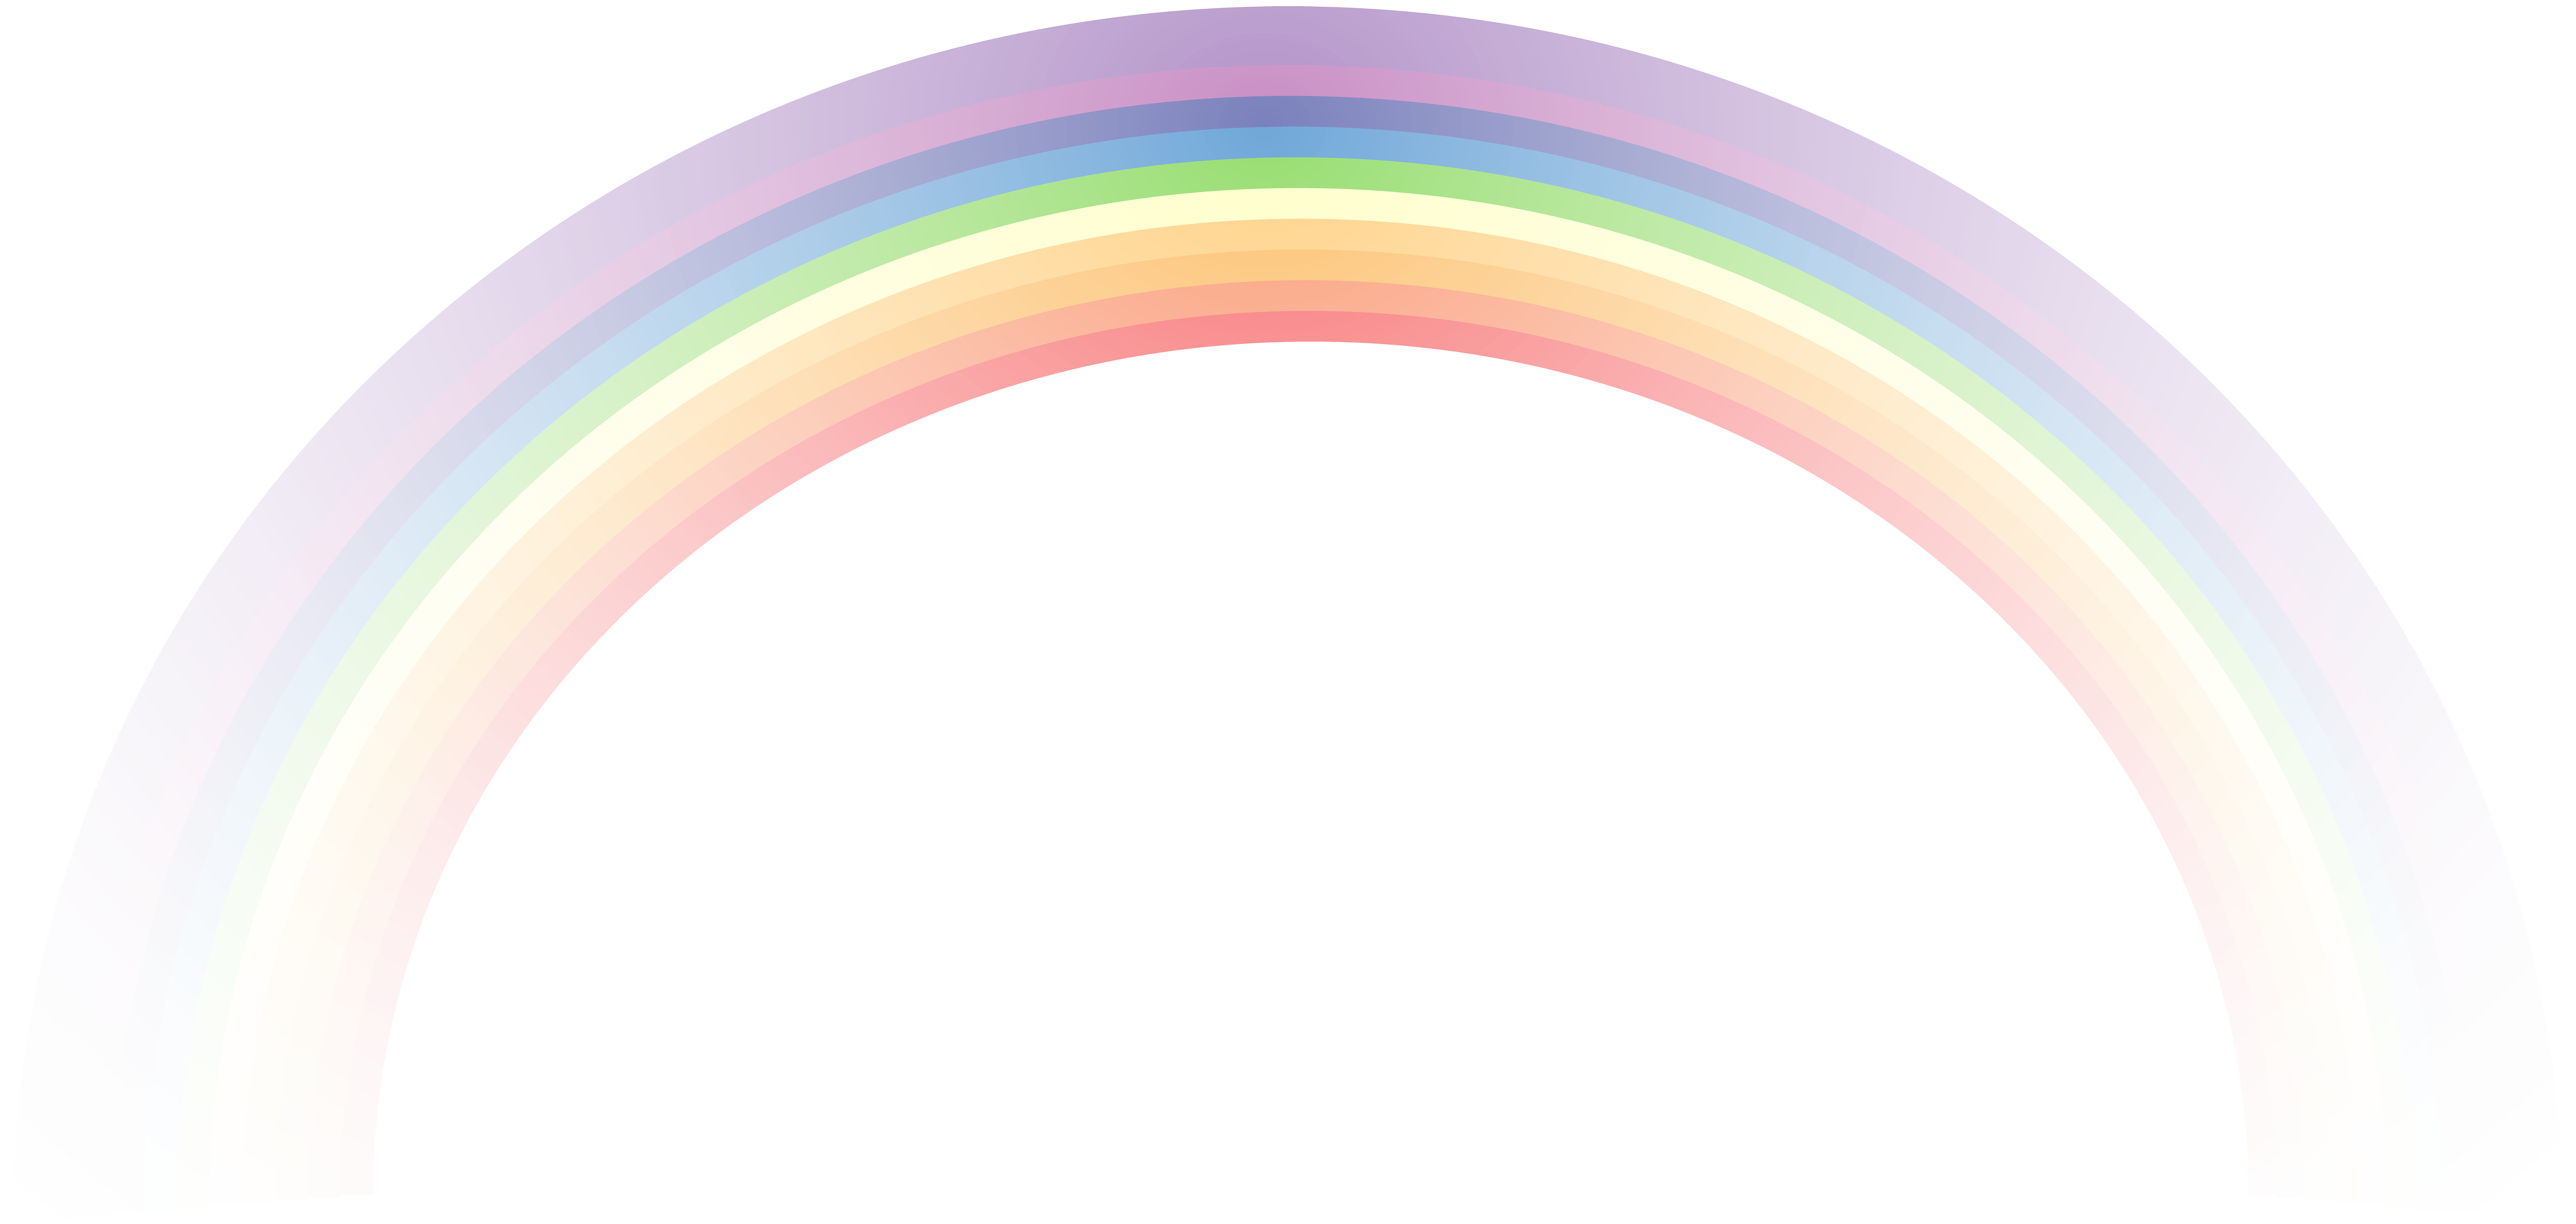 Rainbow transparent png. Clip art image gallery